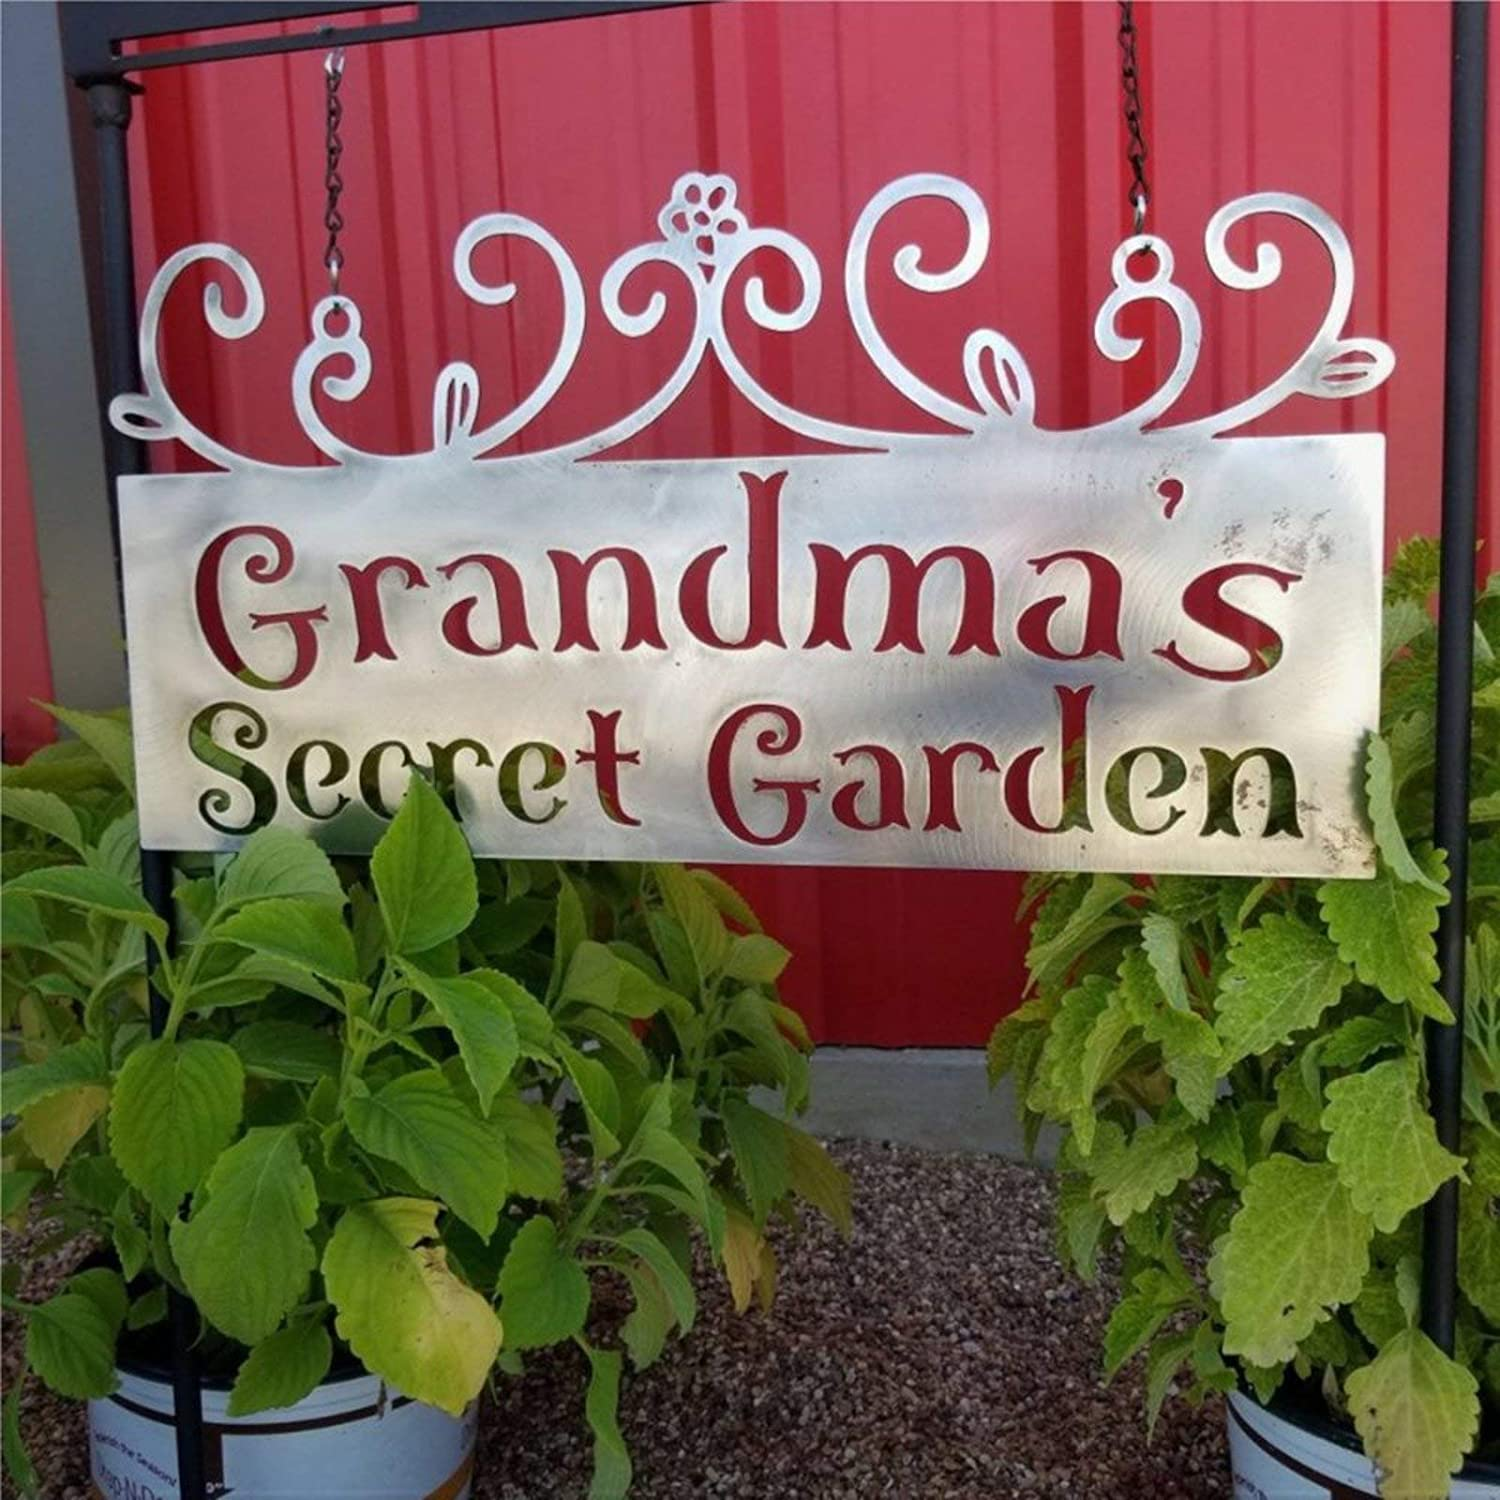 DONL9BAUER Metal Sign Grandmas Secret Garden, Hanging Garden Sign Plaque Home Decor Wall Art Metal Sculpture Front Porch Door Hanger, Best Gift